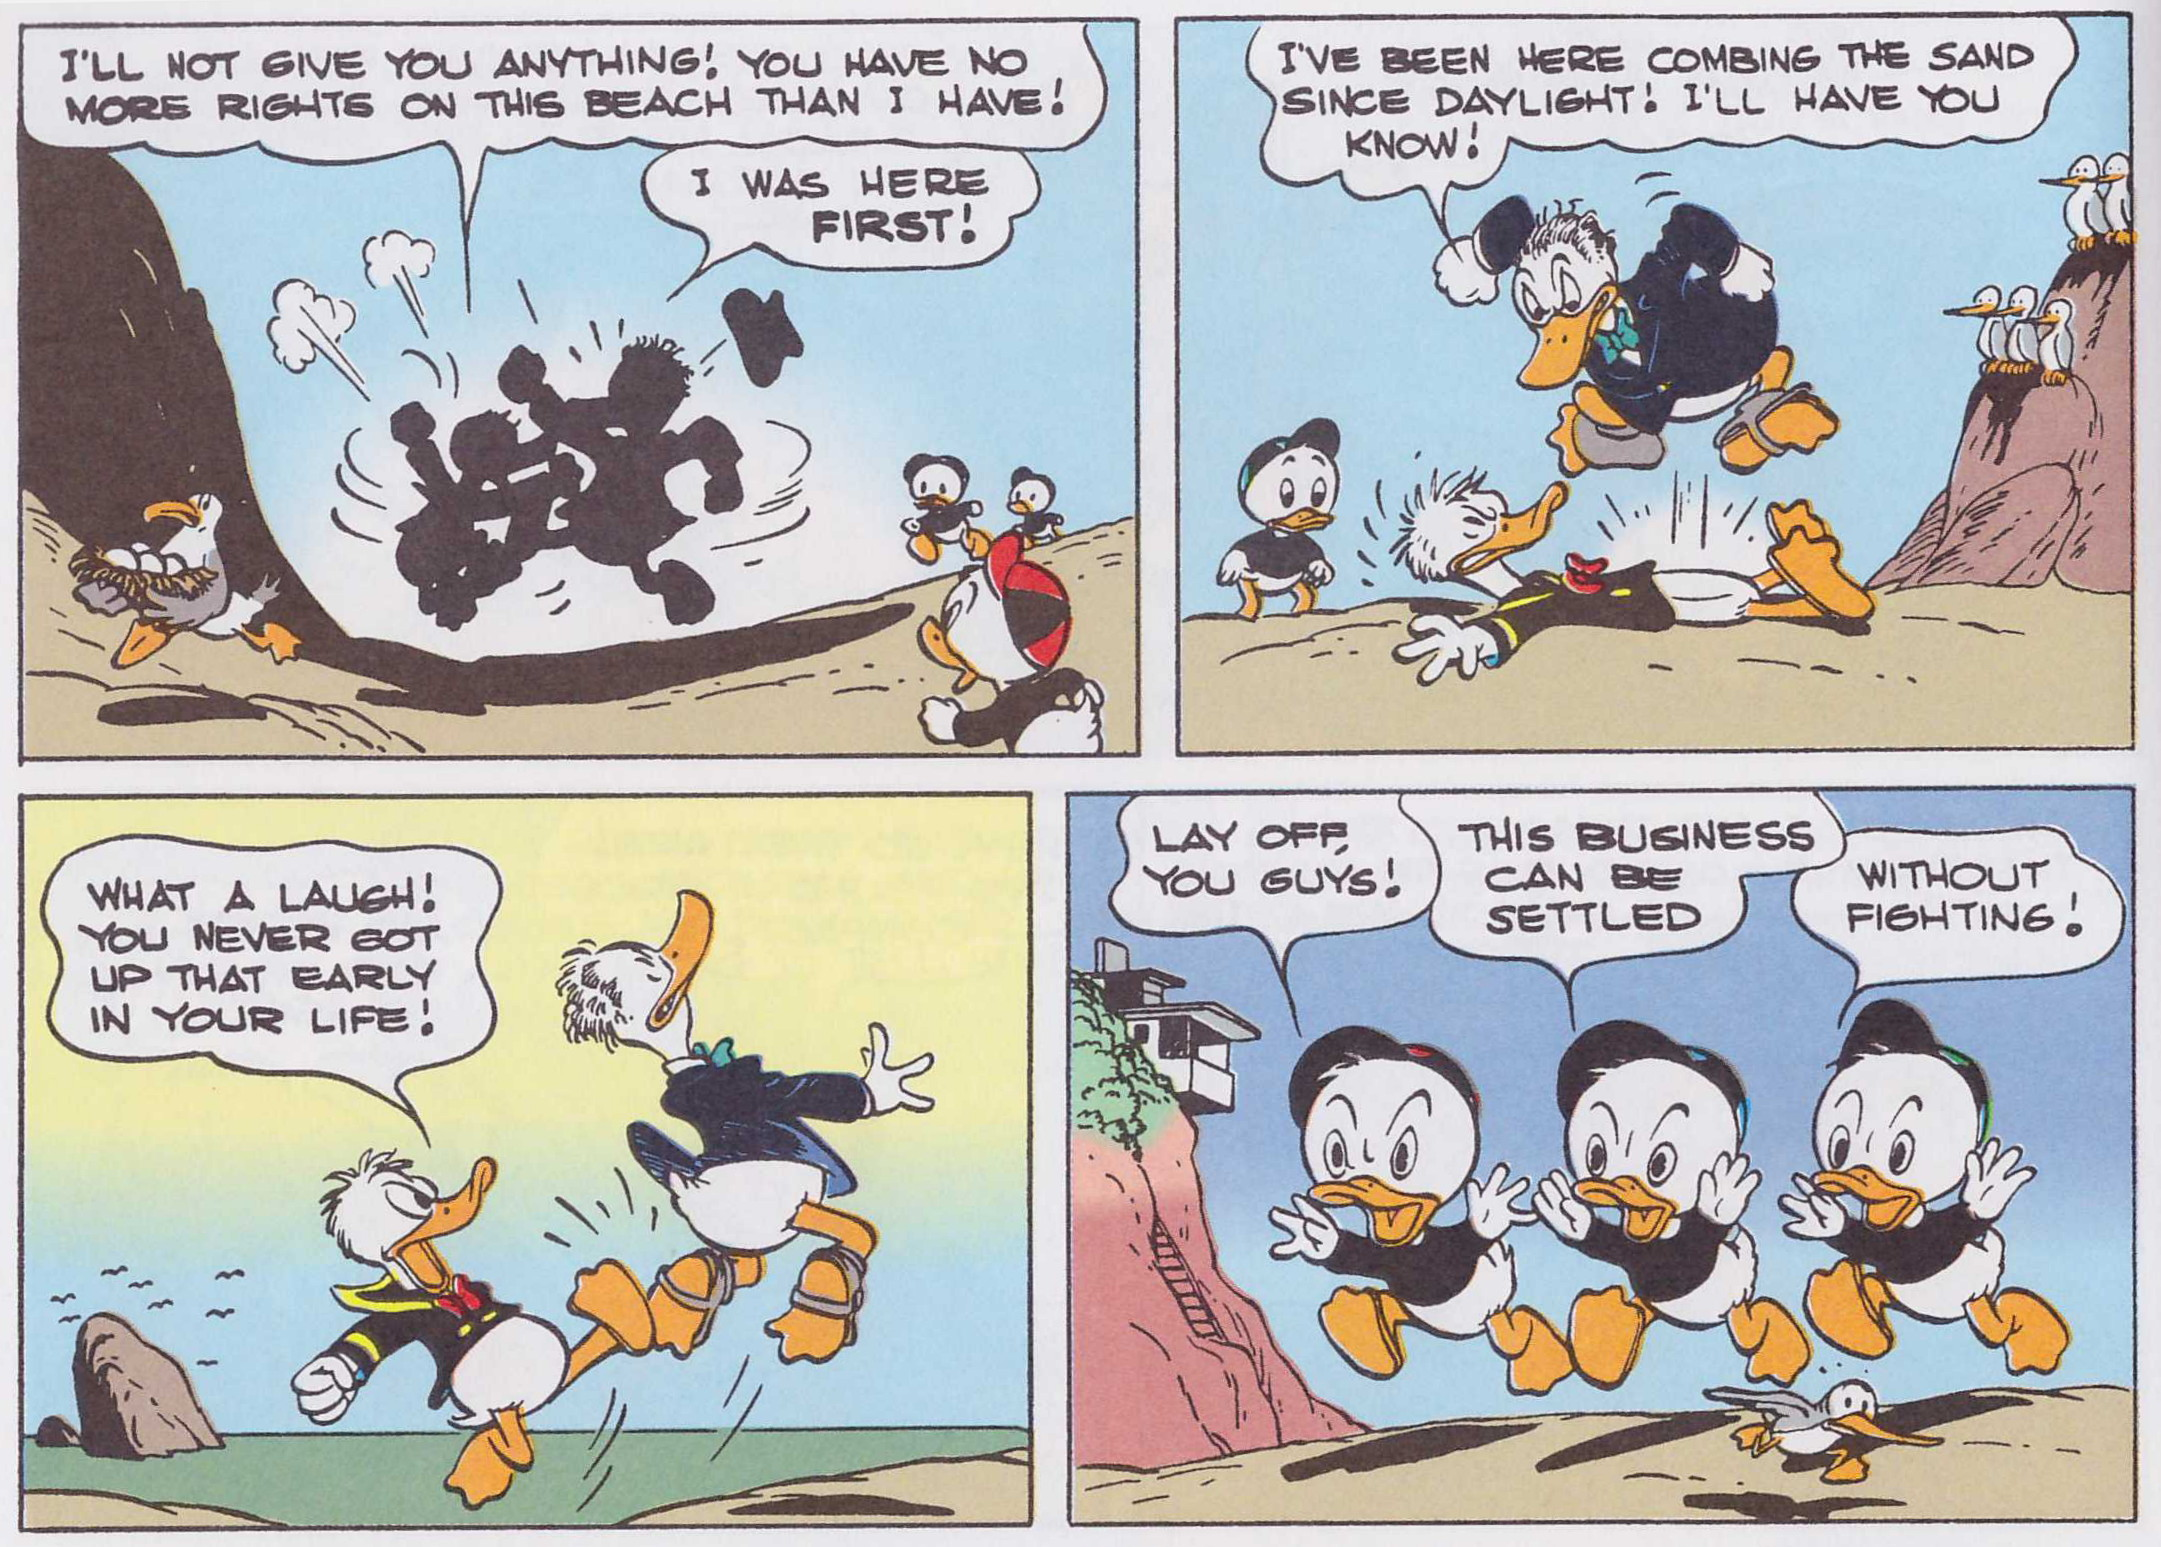 Walt Disney Comics and Stories by Carl Barks vol 15 review